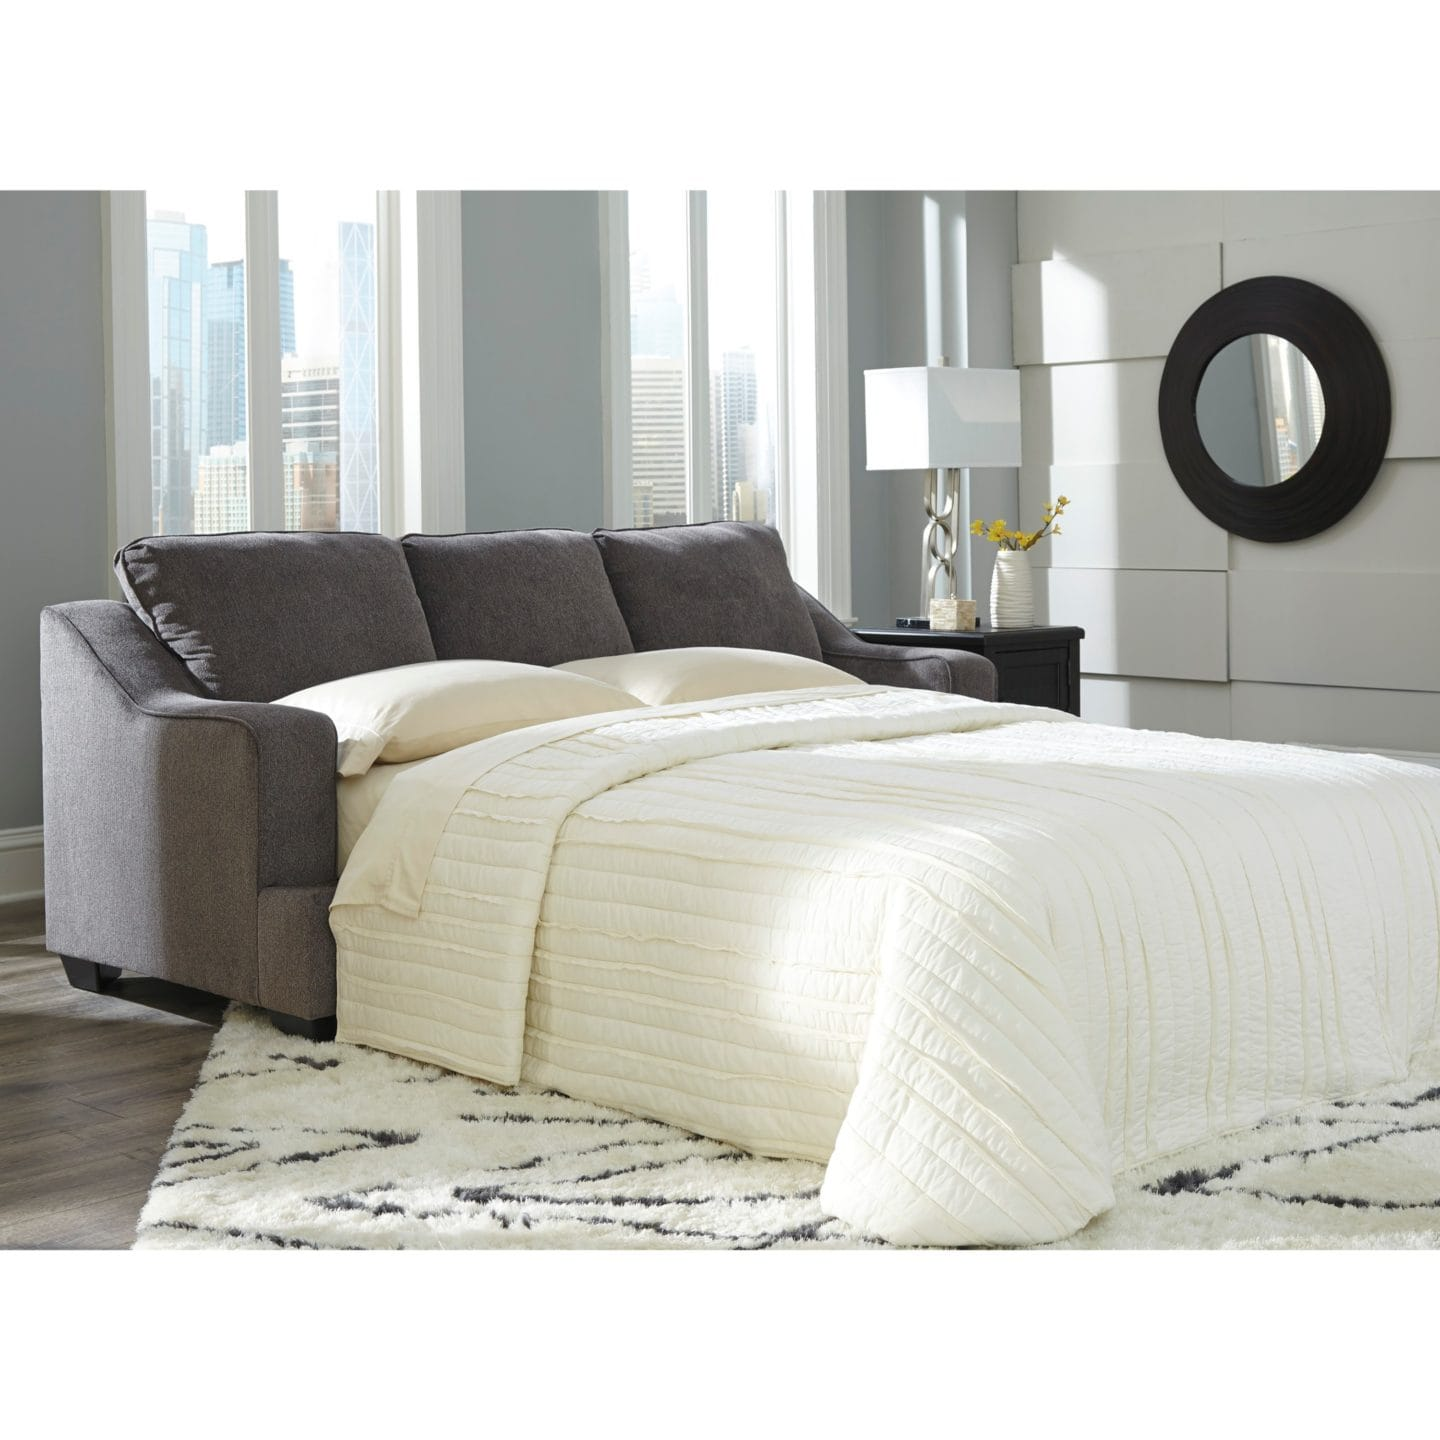 A Grey Sleeper Sofa